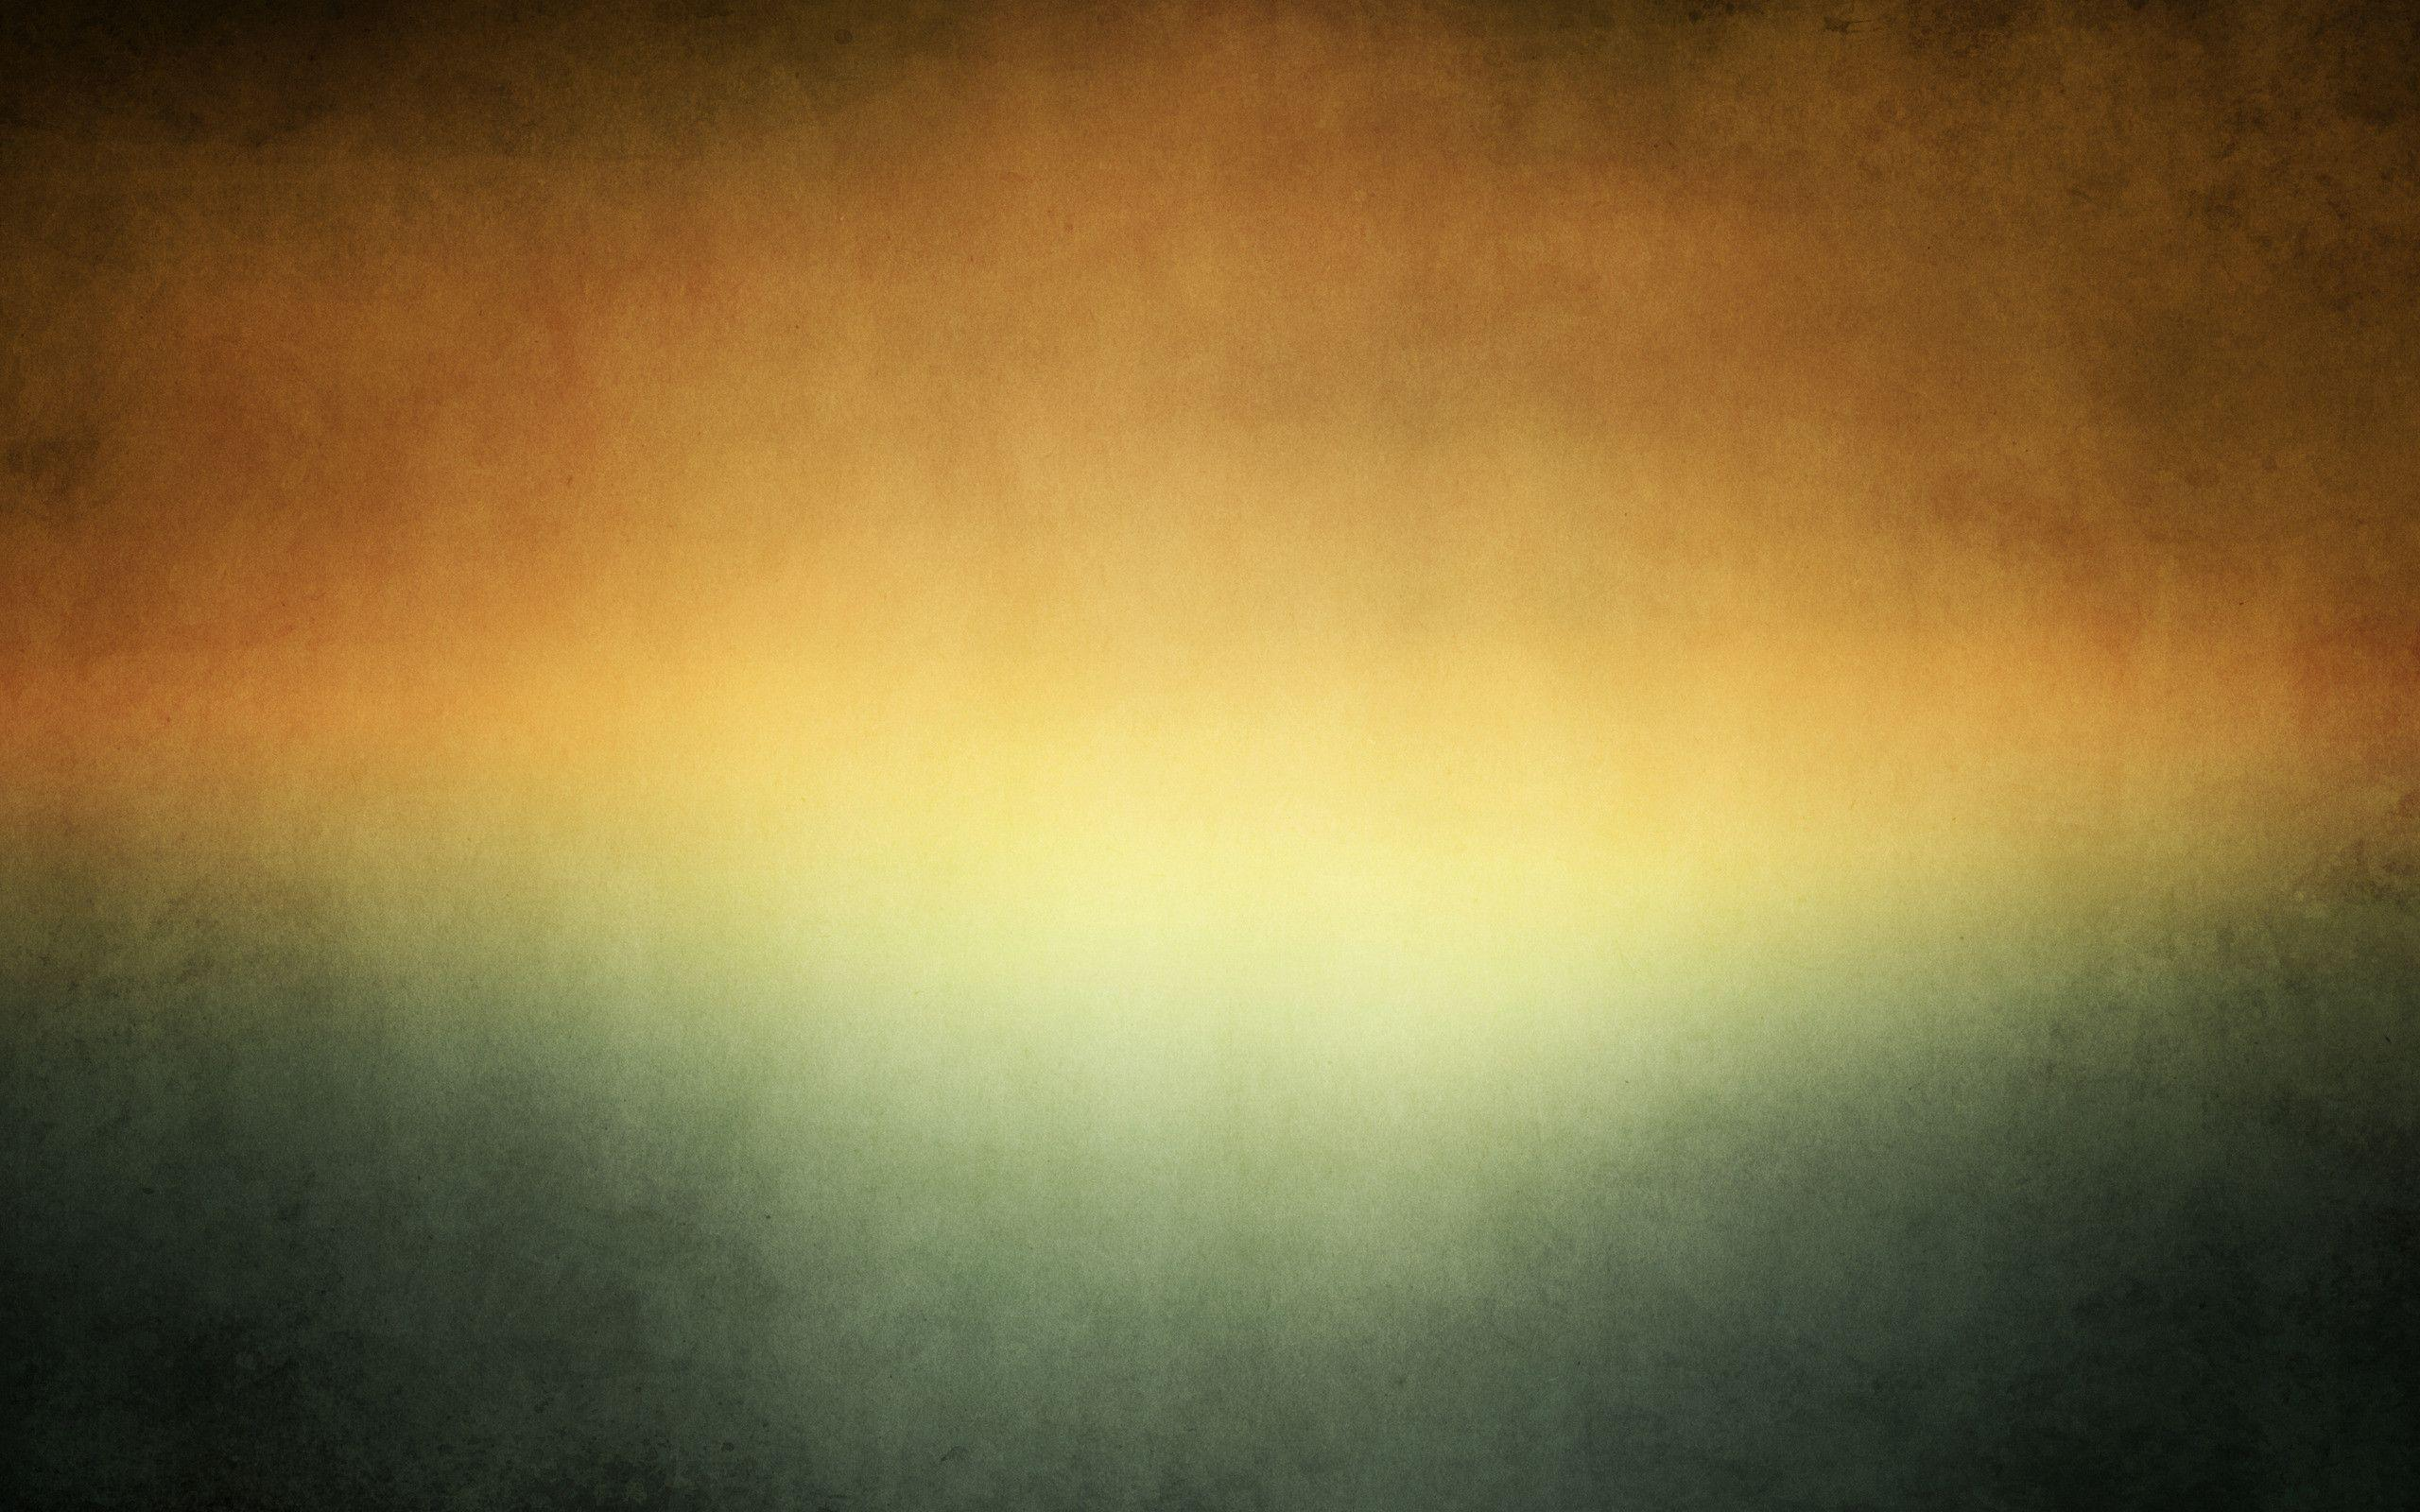 backgrounds wallpaper wallpapers grunge - photo #26